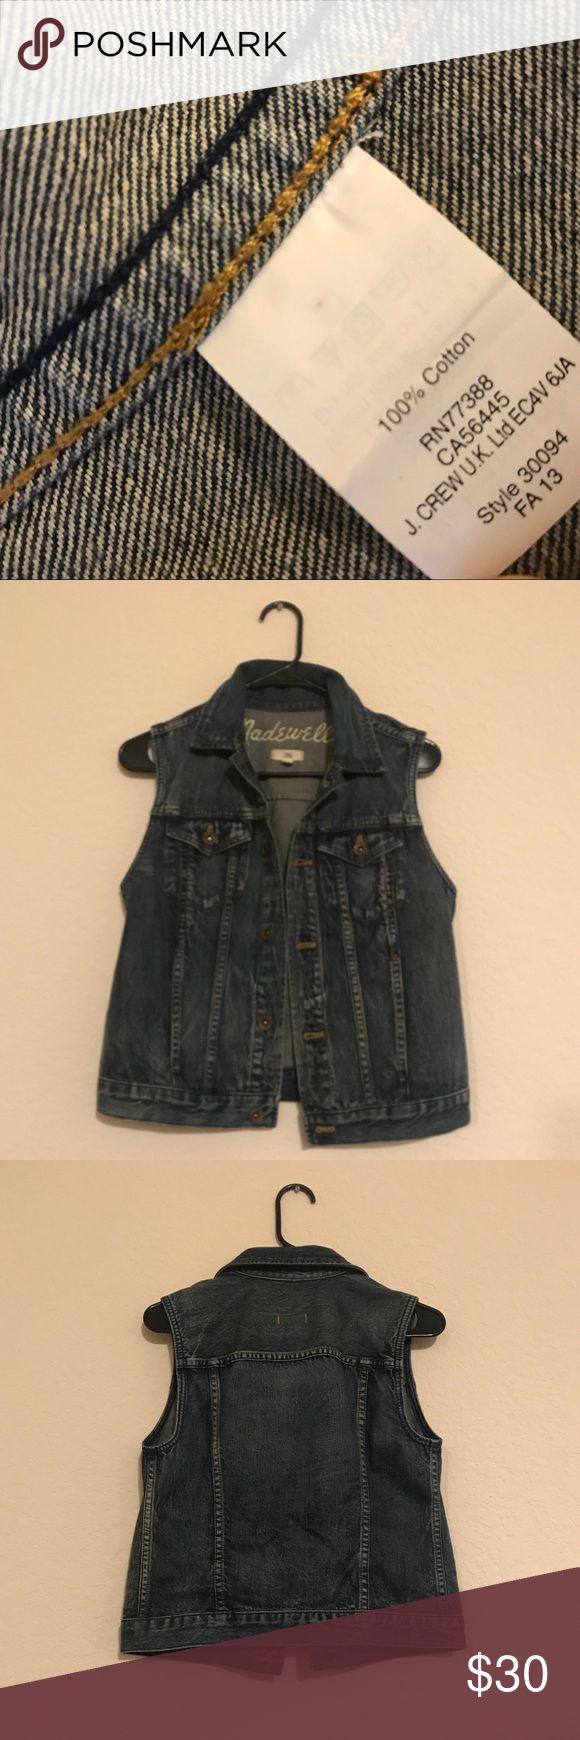 Madewell sleeveless jean jacket Women's madewell sleeveless jean jacket. Perfect condition. Comment if you have a question, and feel free to make an offer! :) Madewell Jackets & Coats Jean Jackets